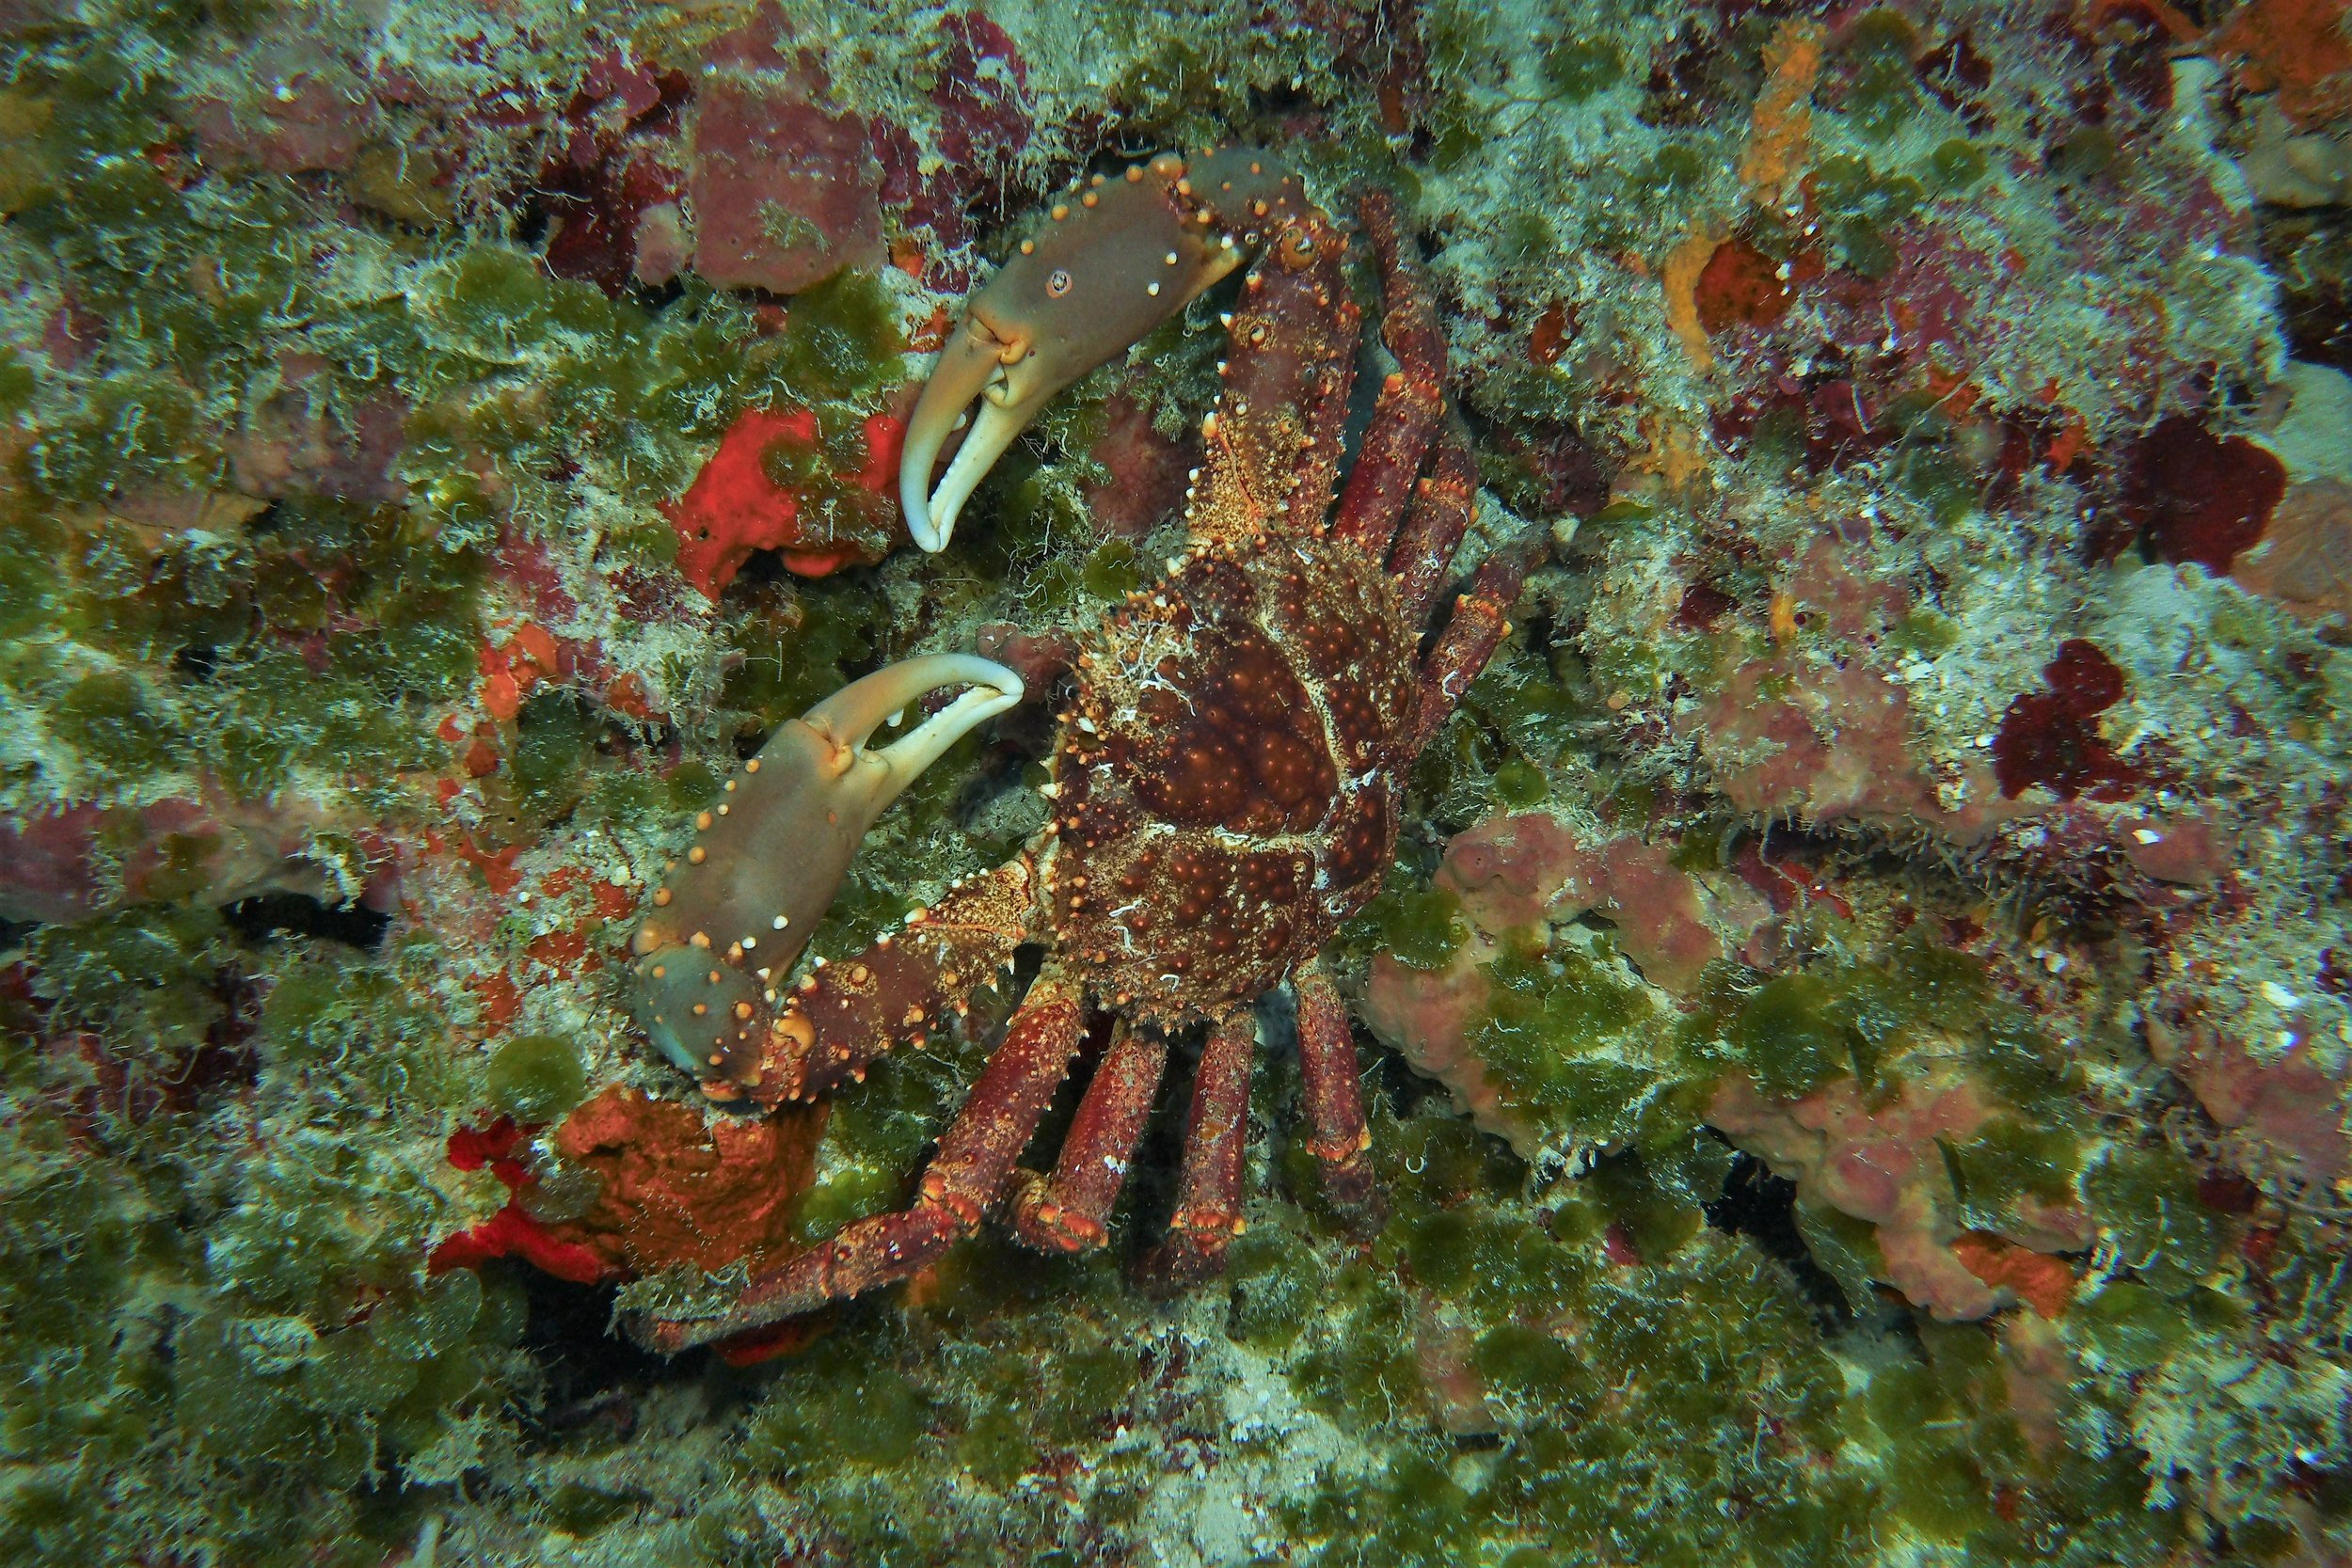 this crab was hiding deep under a ledge of coral